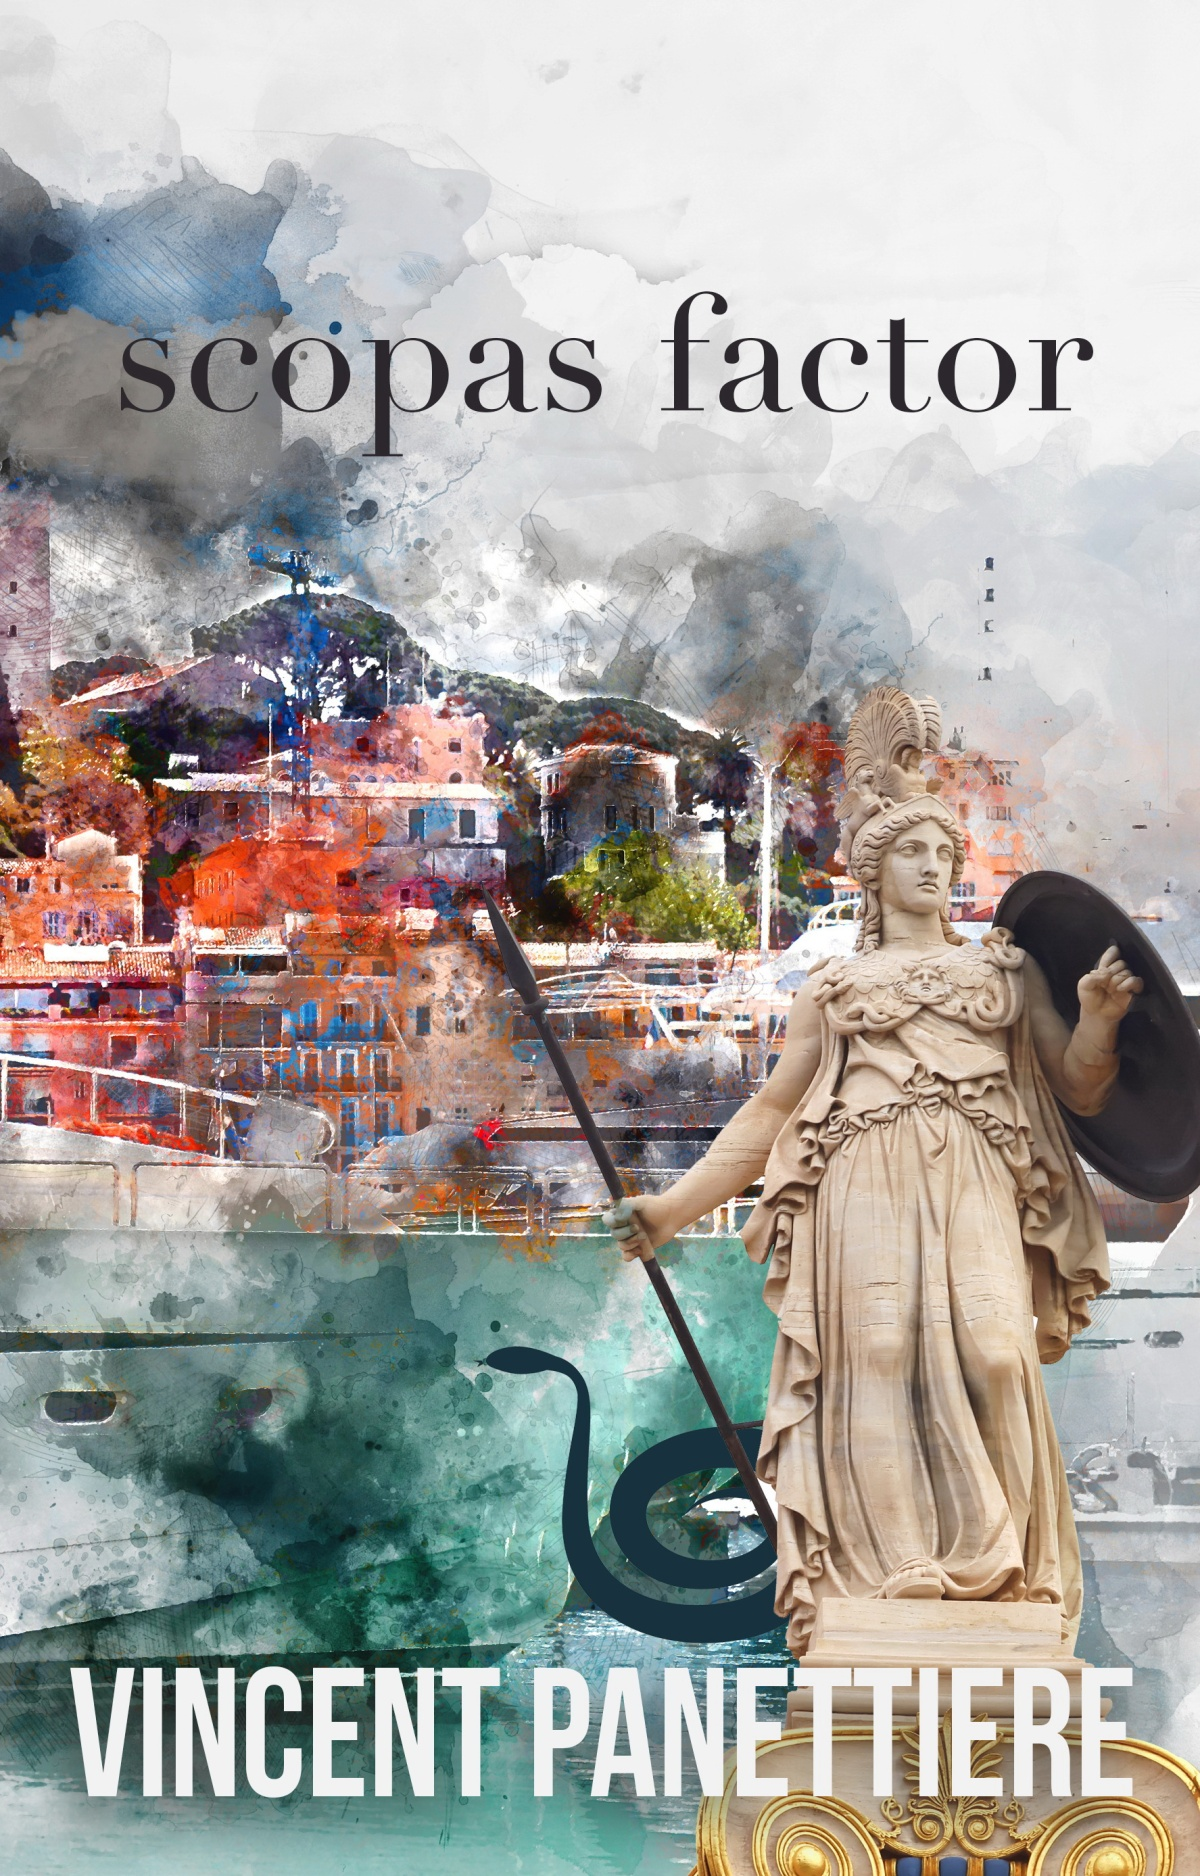 The Scopas Factor by Vincent Panettiere Review